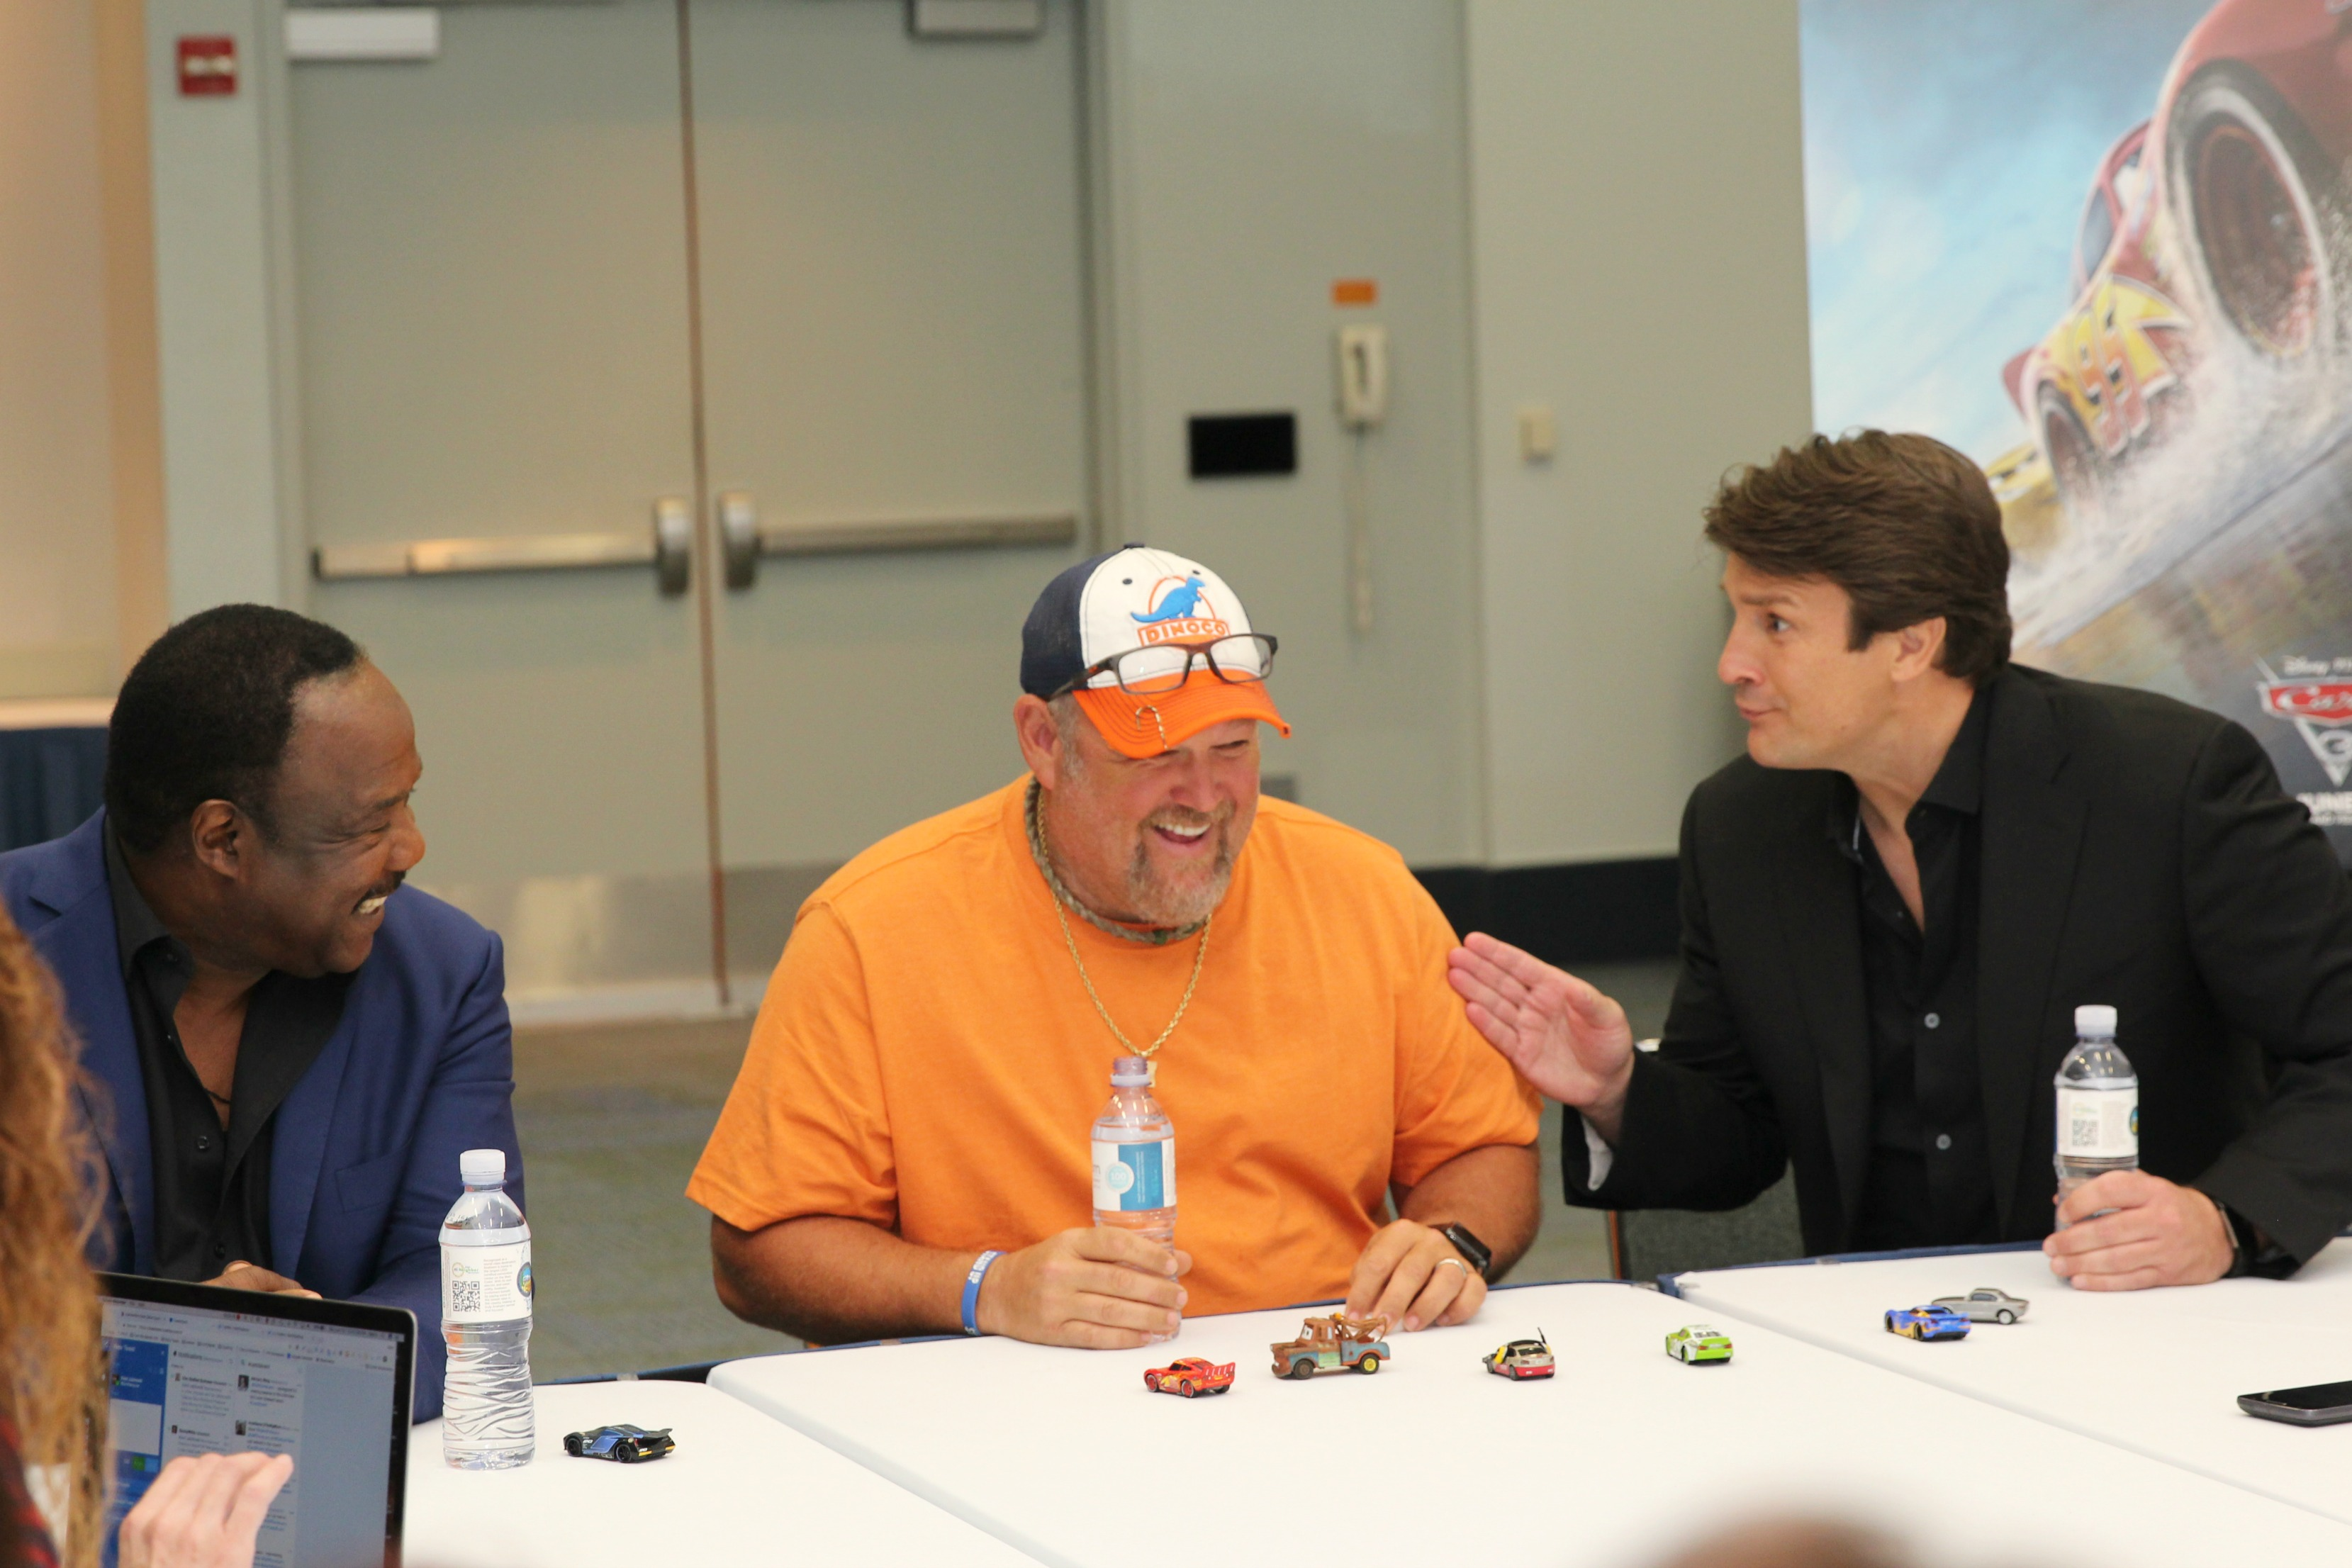 Chatting with the Cast of Cars 3